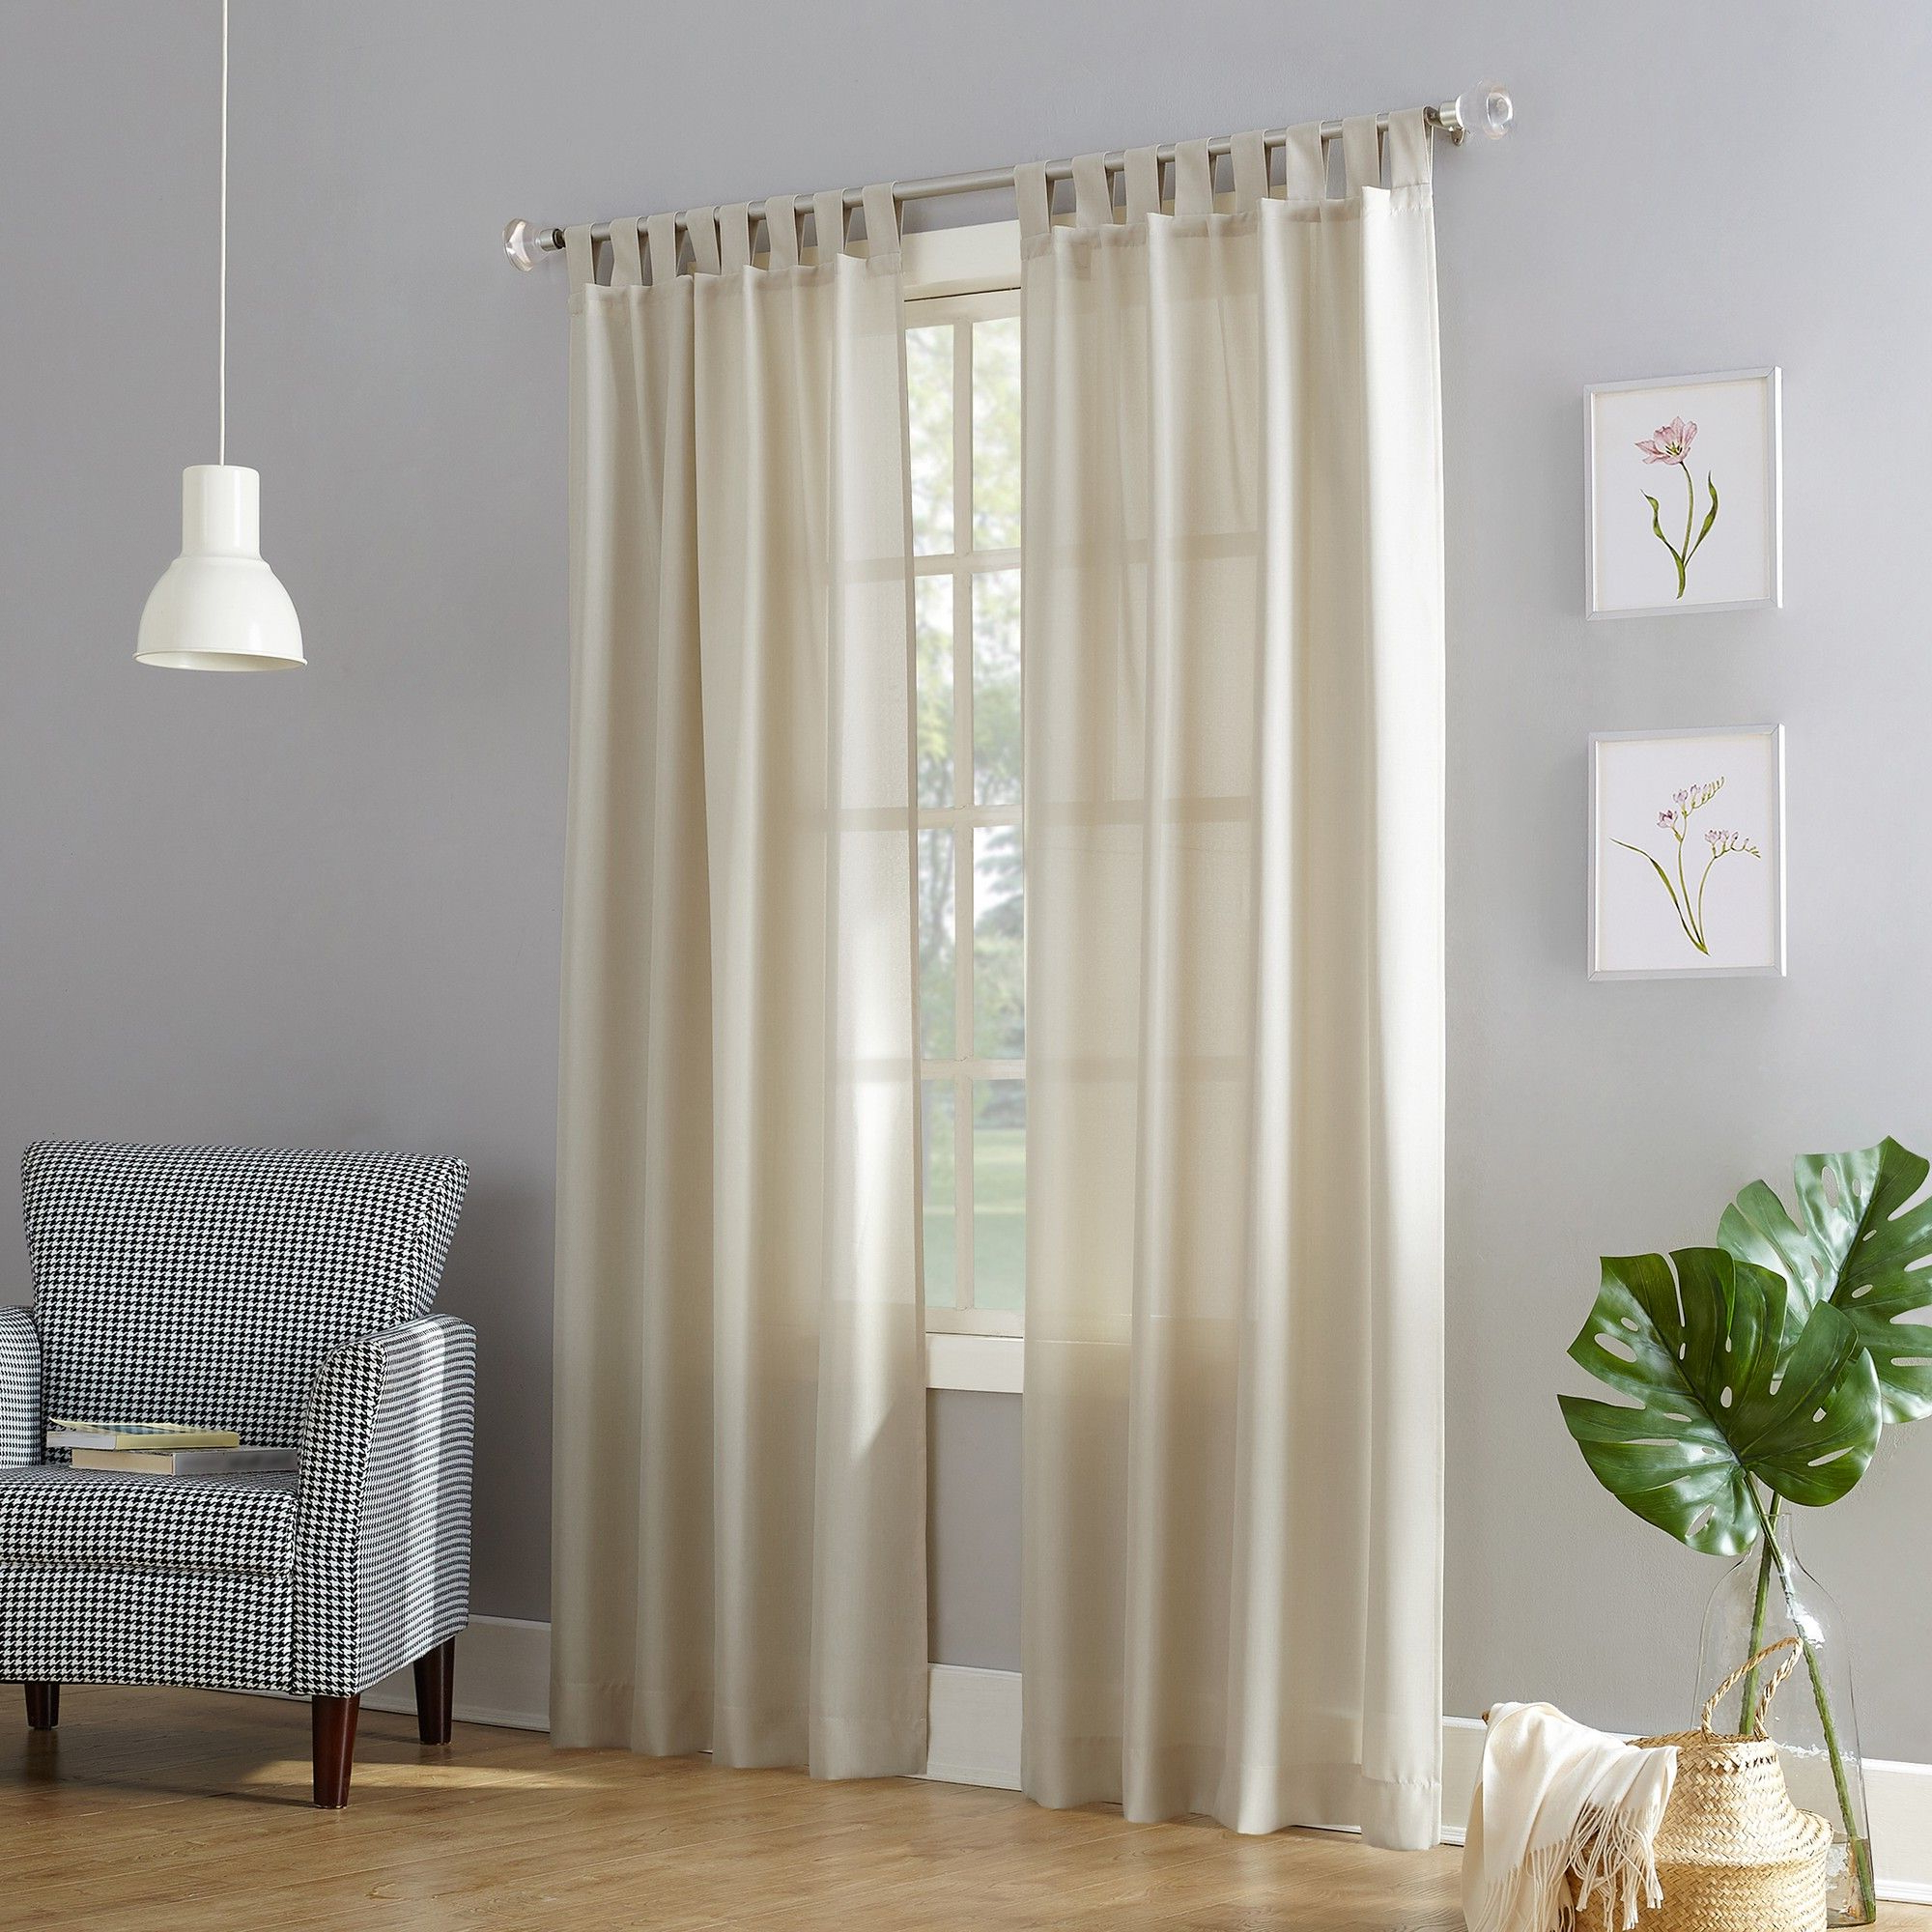 Archaeo Washed Cotton Twist Tab Single Curtain Panels Pertaining To Preferred Joshua Casual Textured Semi Sheer Tab Top Curtain Panel Ecru (View 12 of 20)